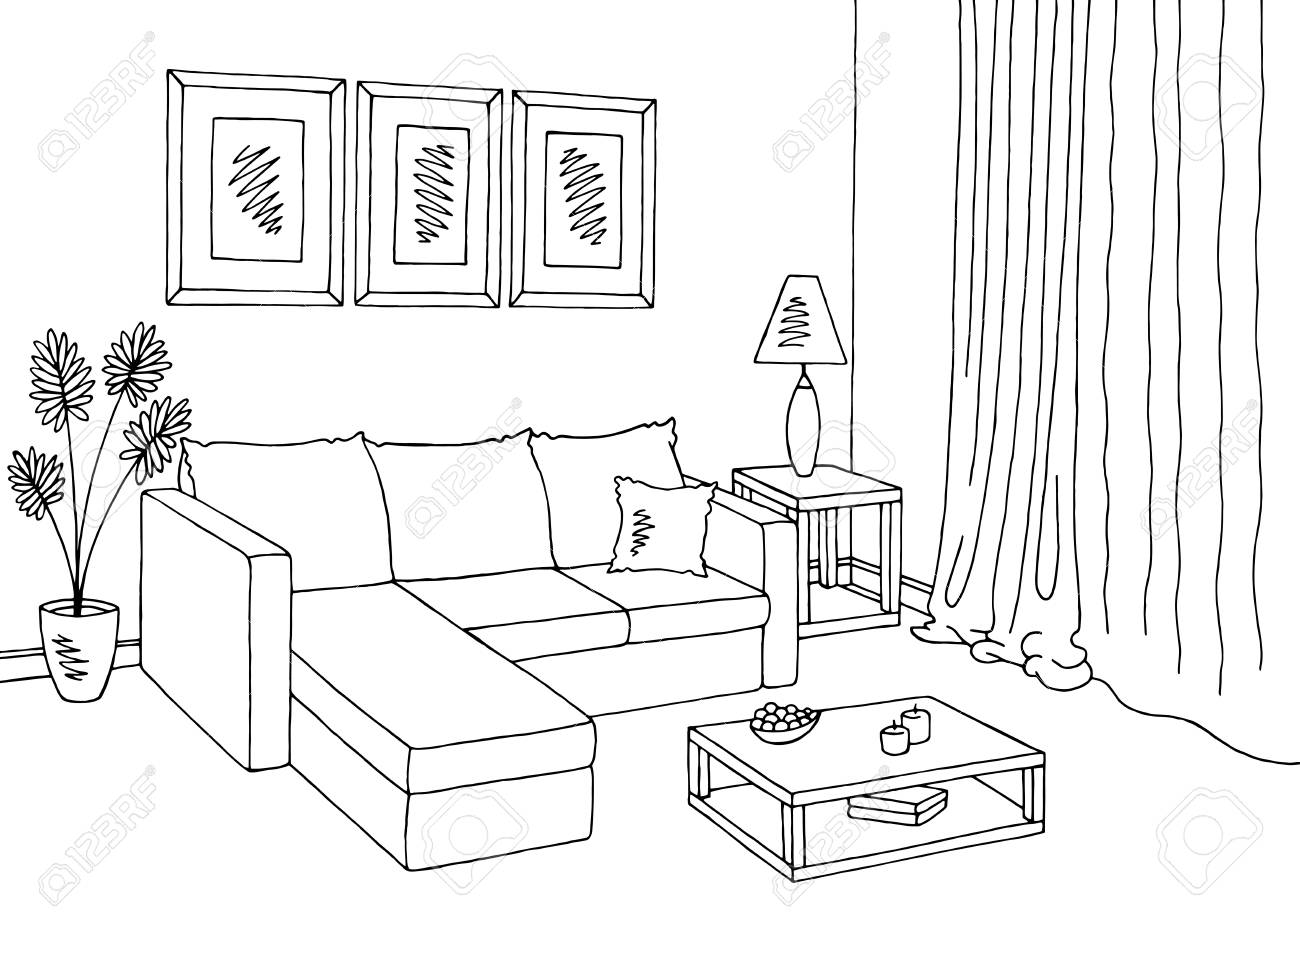 Living room clipart black and white » Clipart Station.